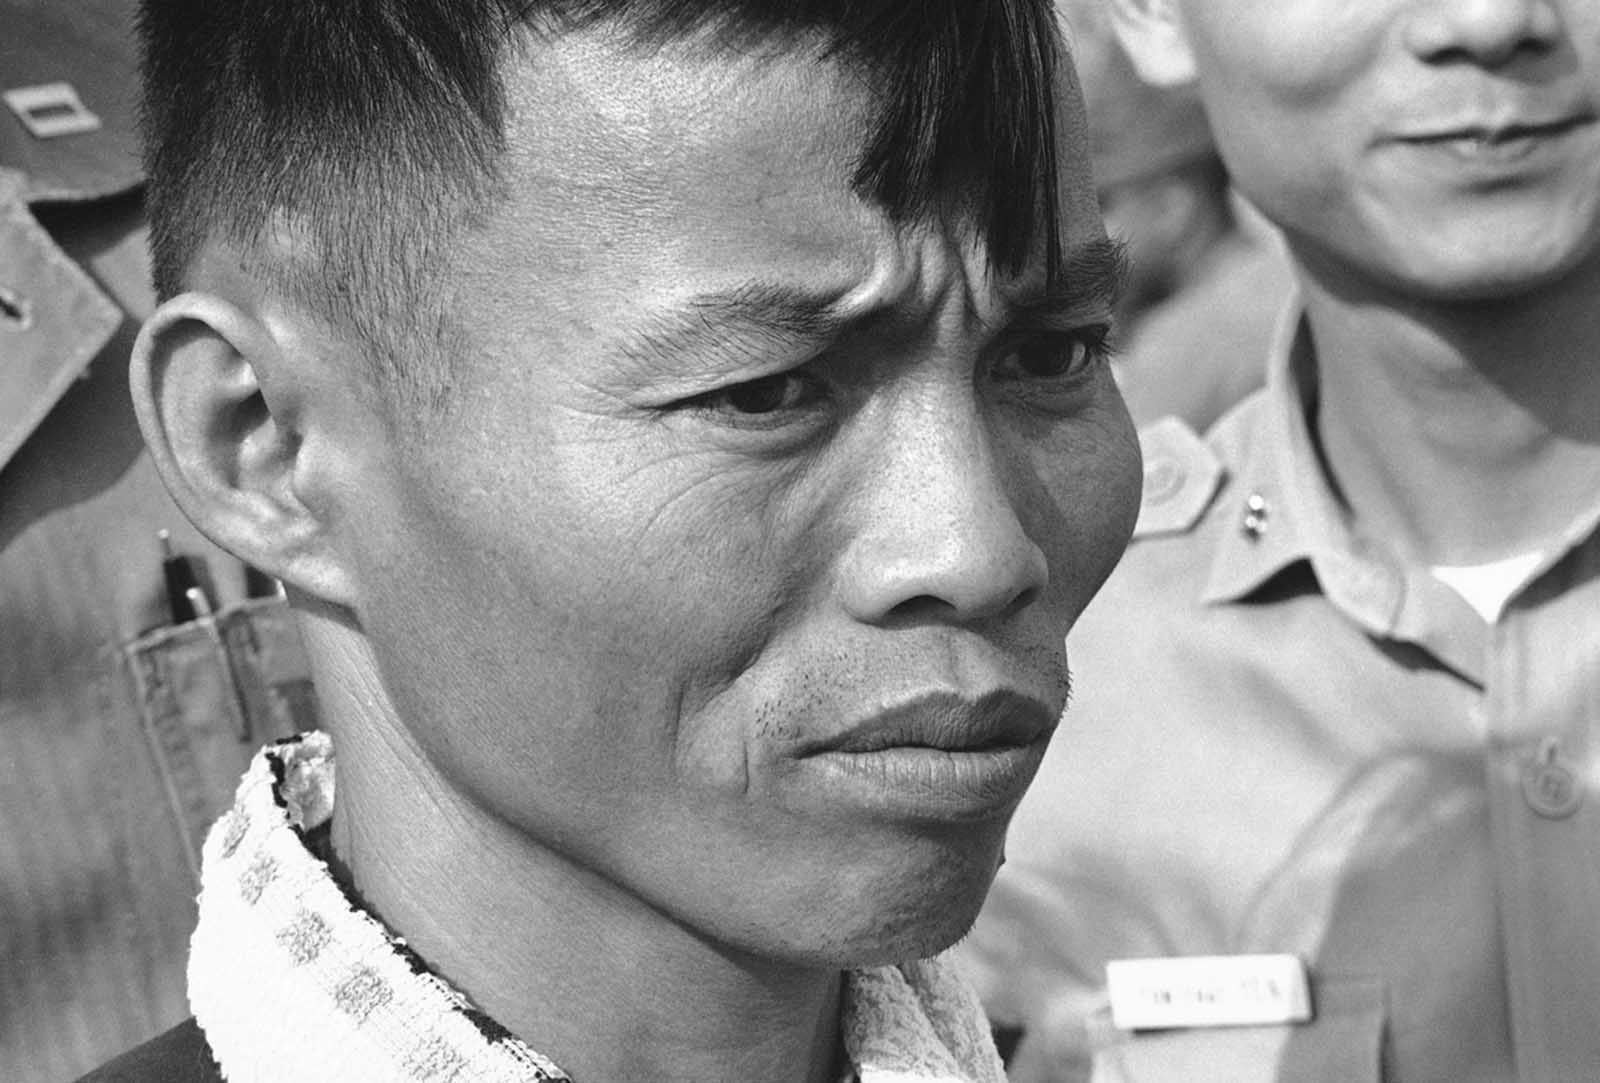 A Viet Cong fighter in Vietnam in an undated photo.